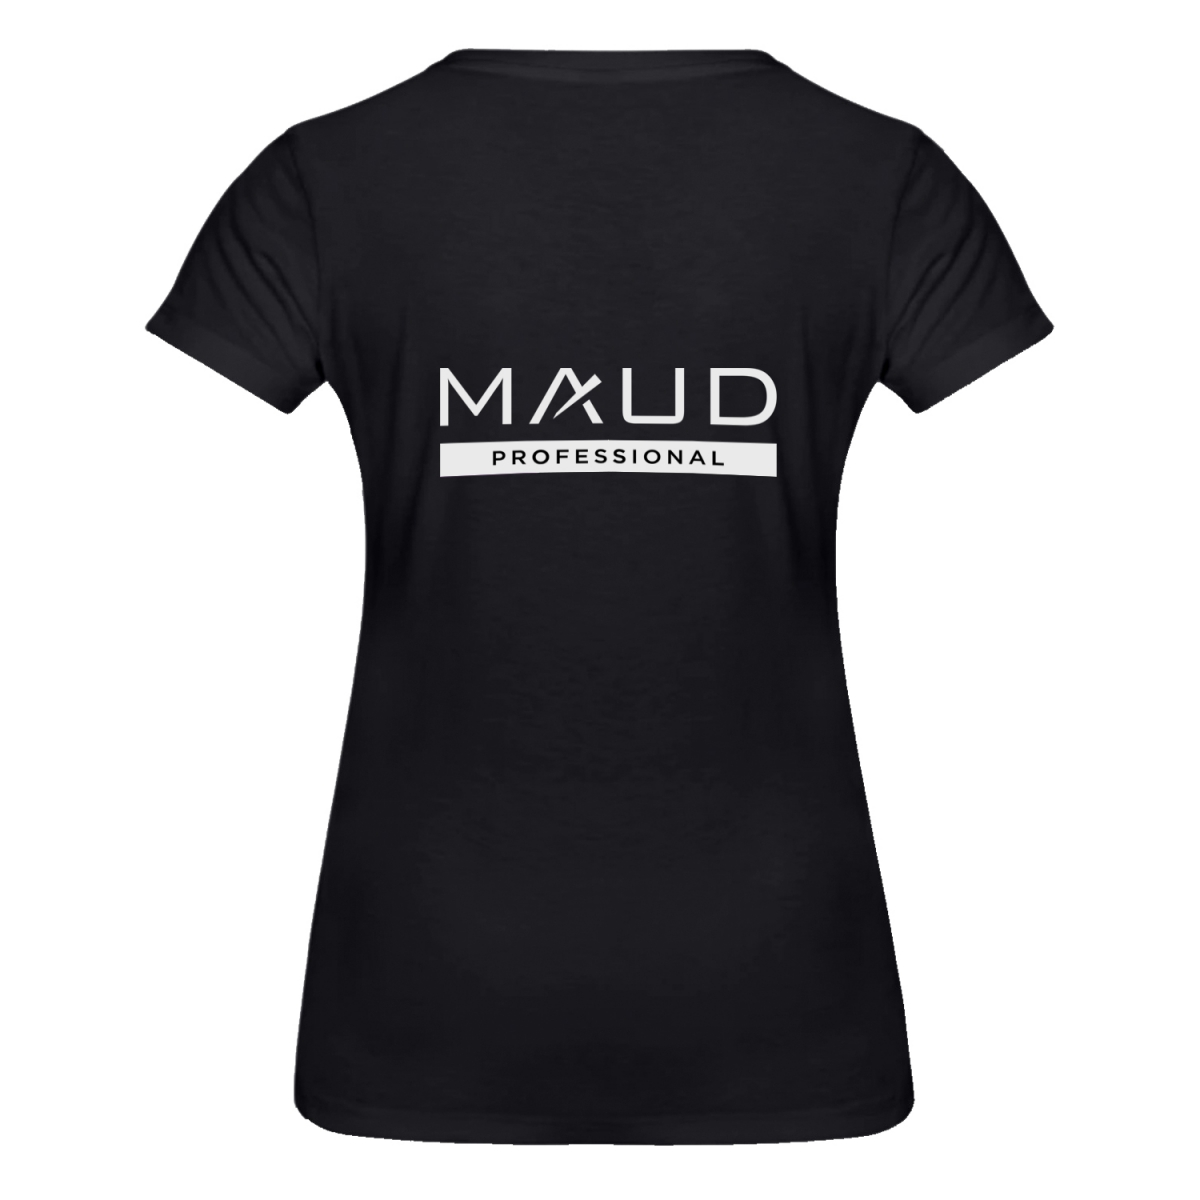 VETEMENTS - MAUD PROFESSIONAL SHOP - T-SHIRT MAUD PROFESSIONNEL SHOP FEMME NOIR